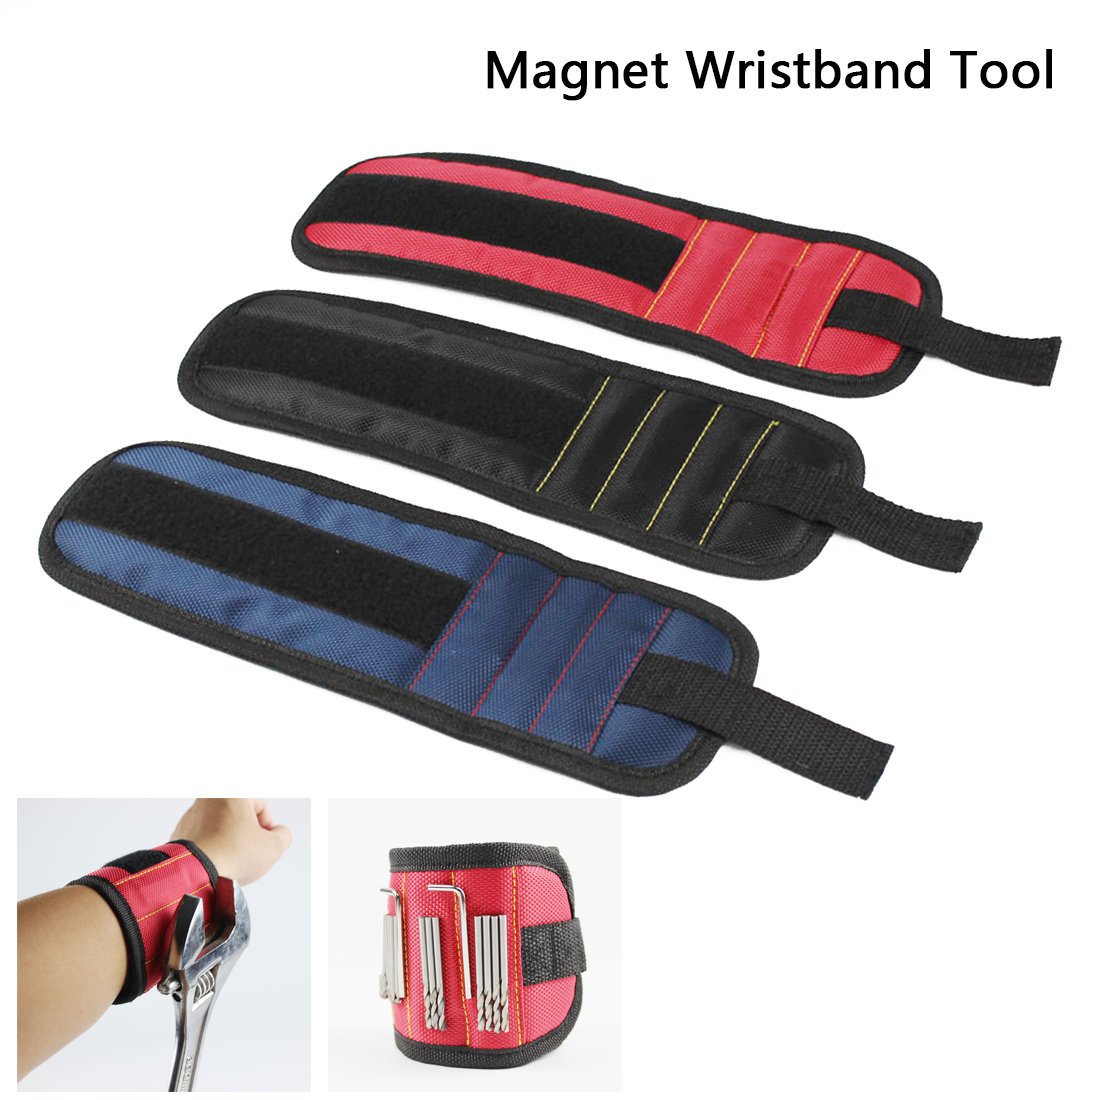 3 Magnets Screws Nails Drill Bits Electrician Bag Magnetic Wristband Portable Small Tool Bag Magnetic Bracelet